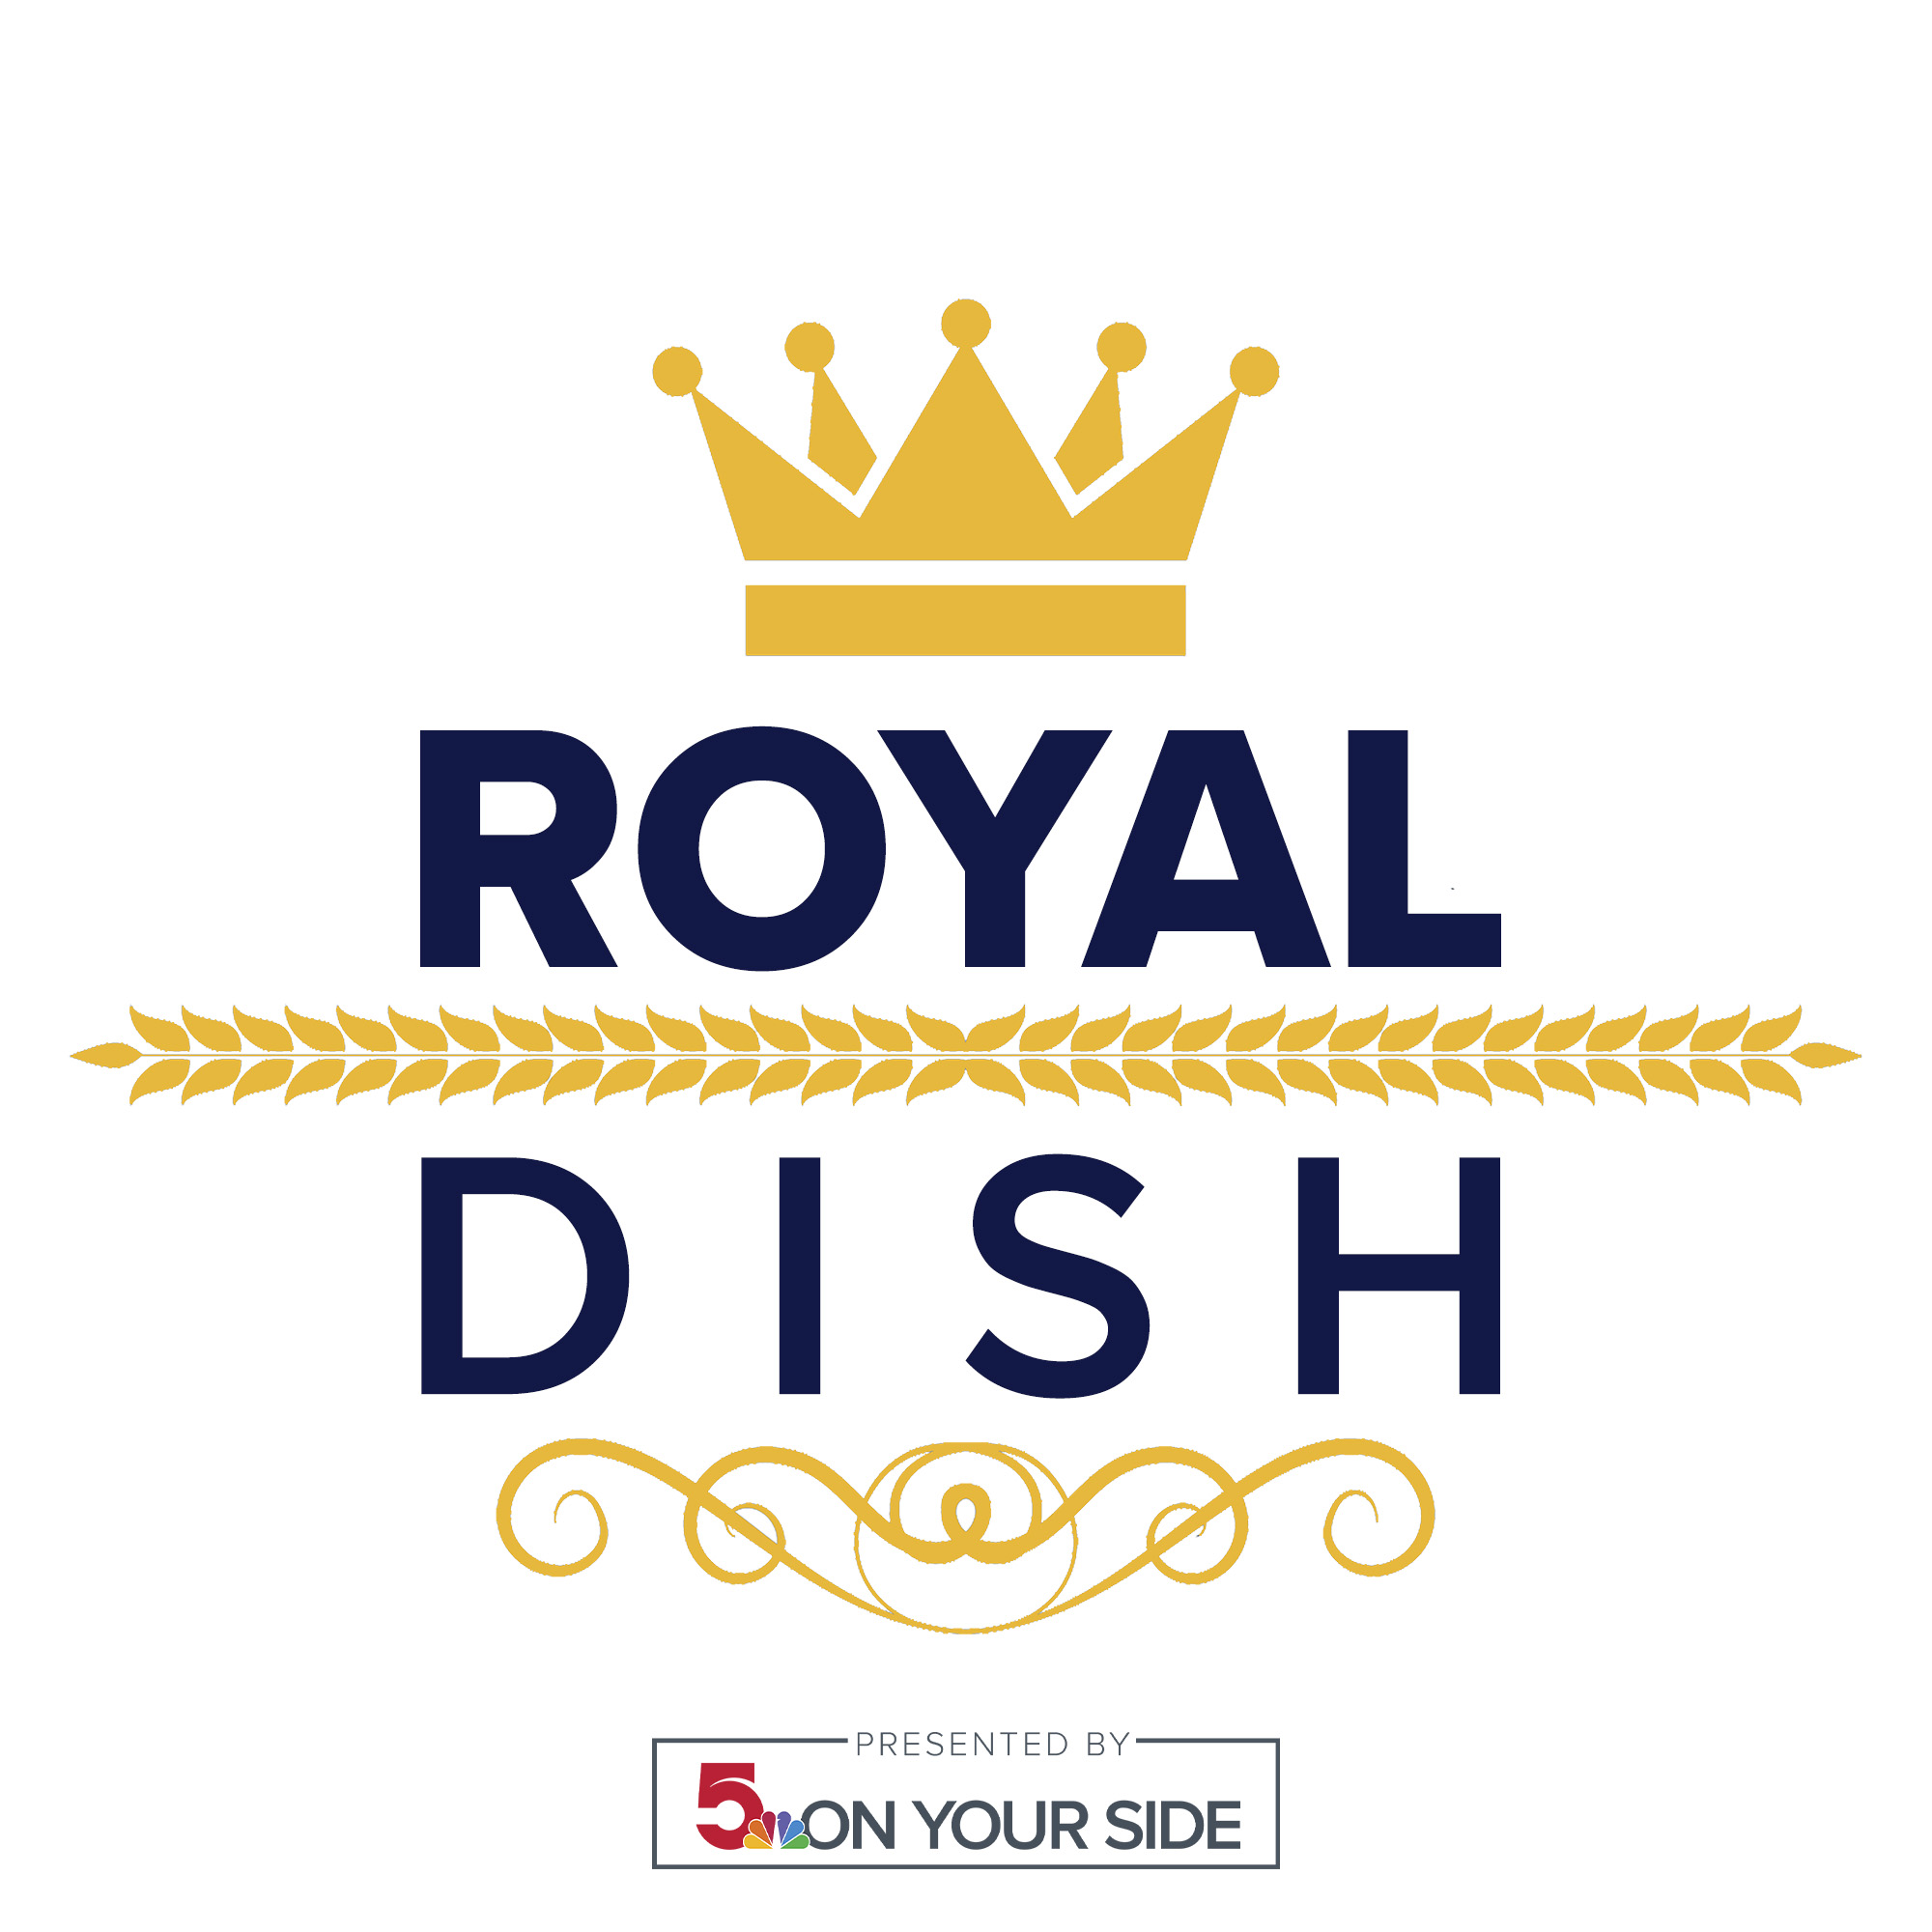 Royal Dish